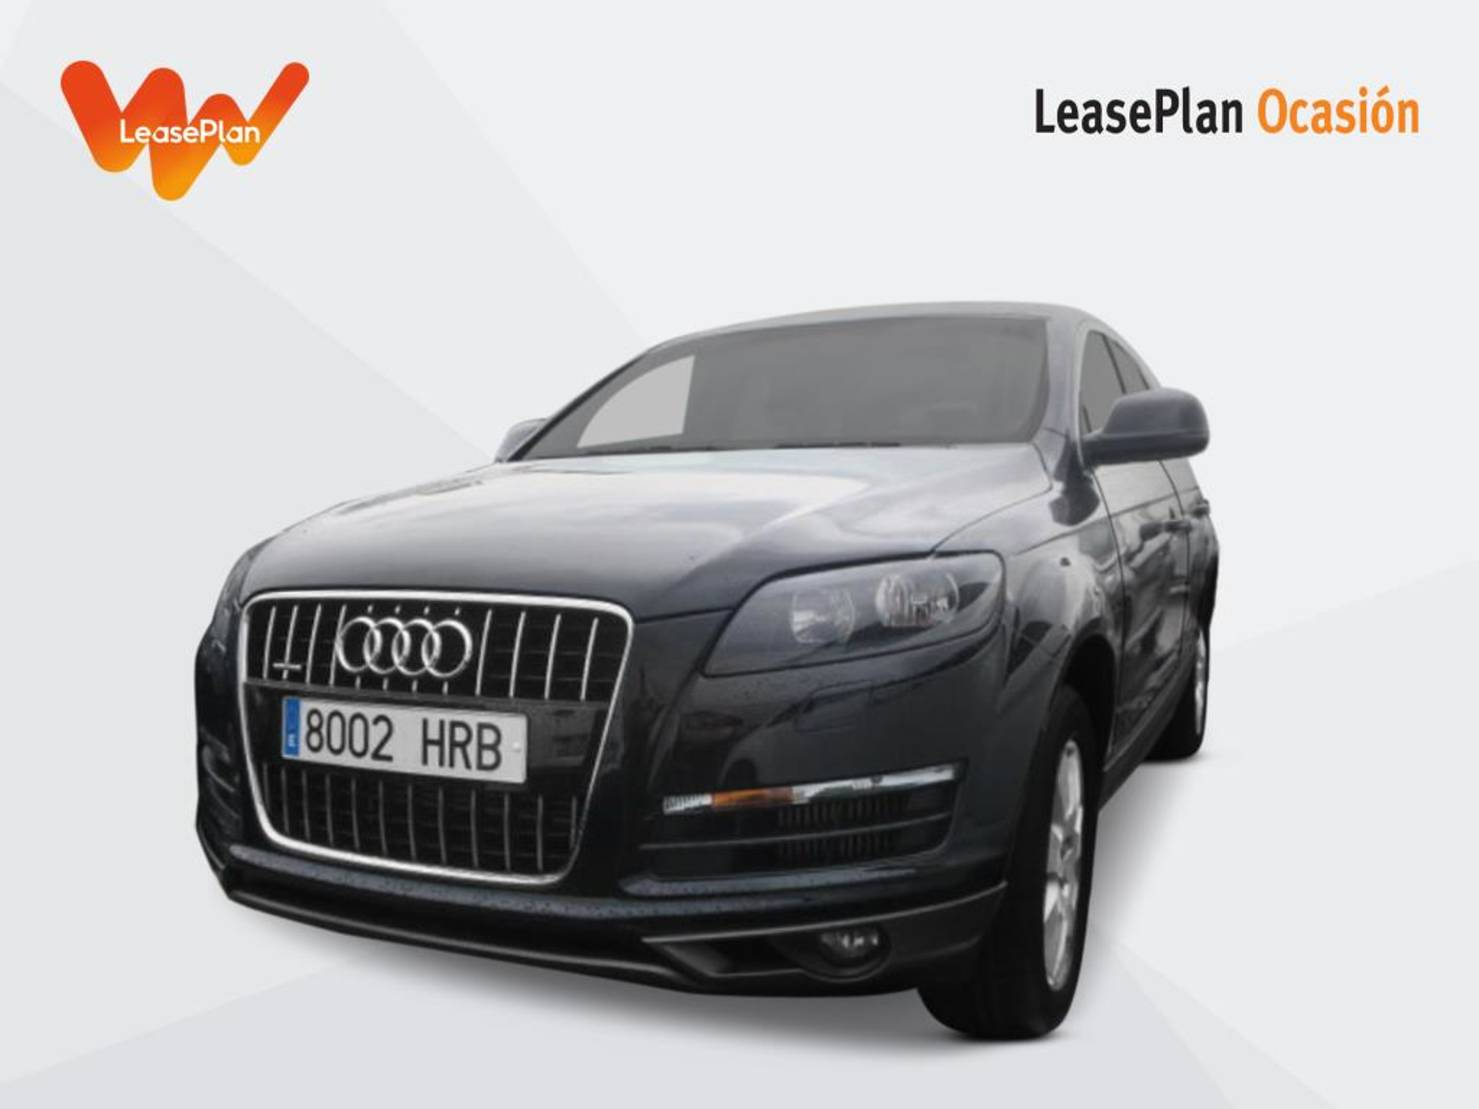 Audi Q7 3.0 Tdi 204cv Quattro Tiptronic Advance detail1